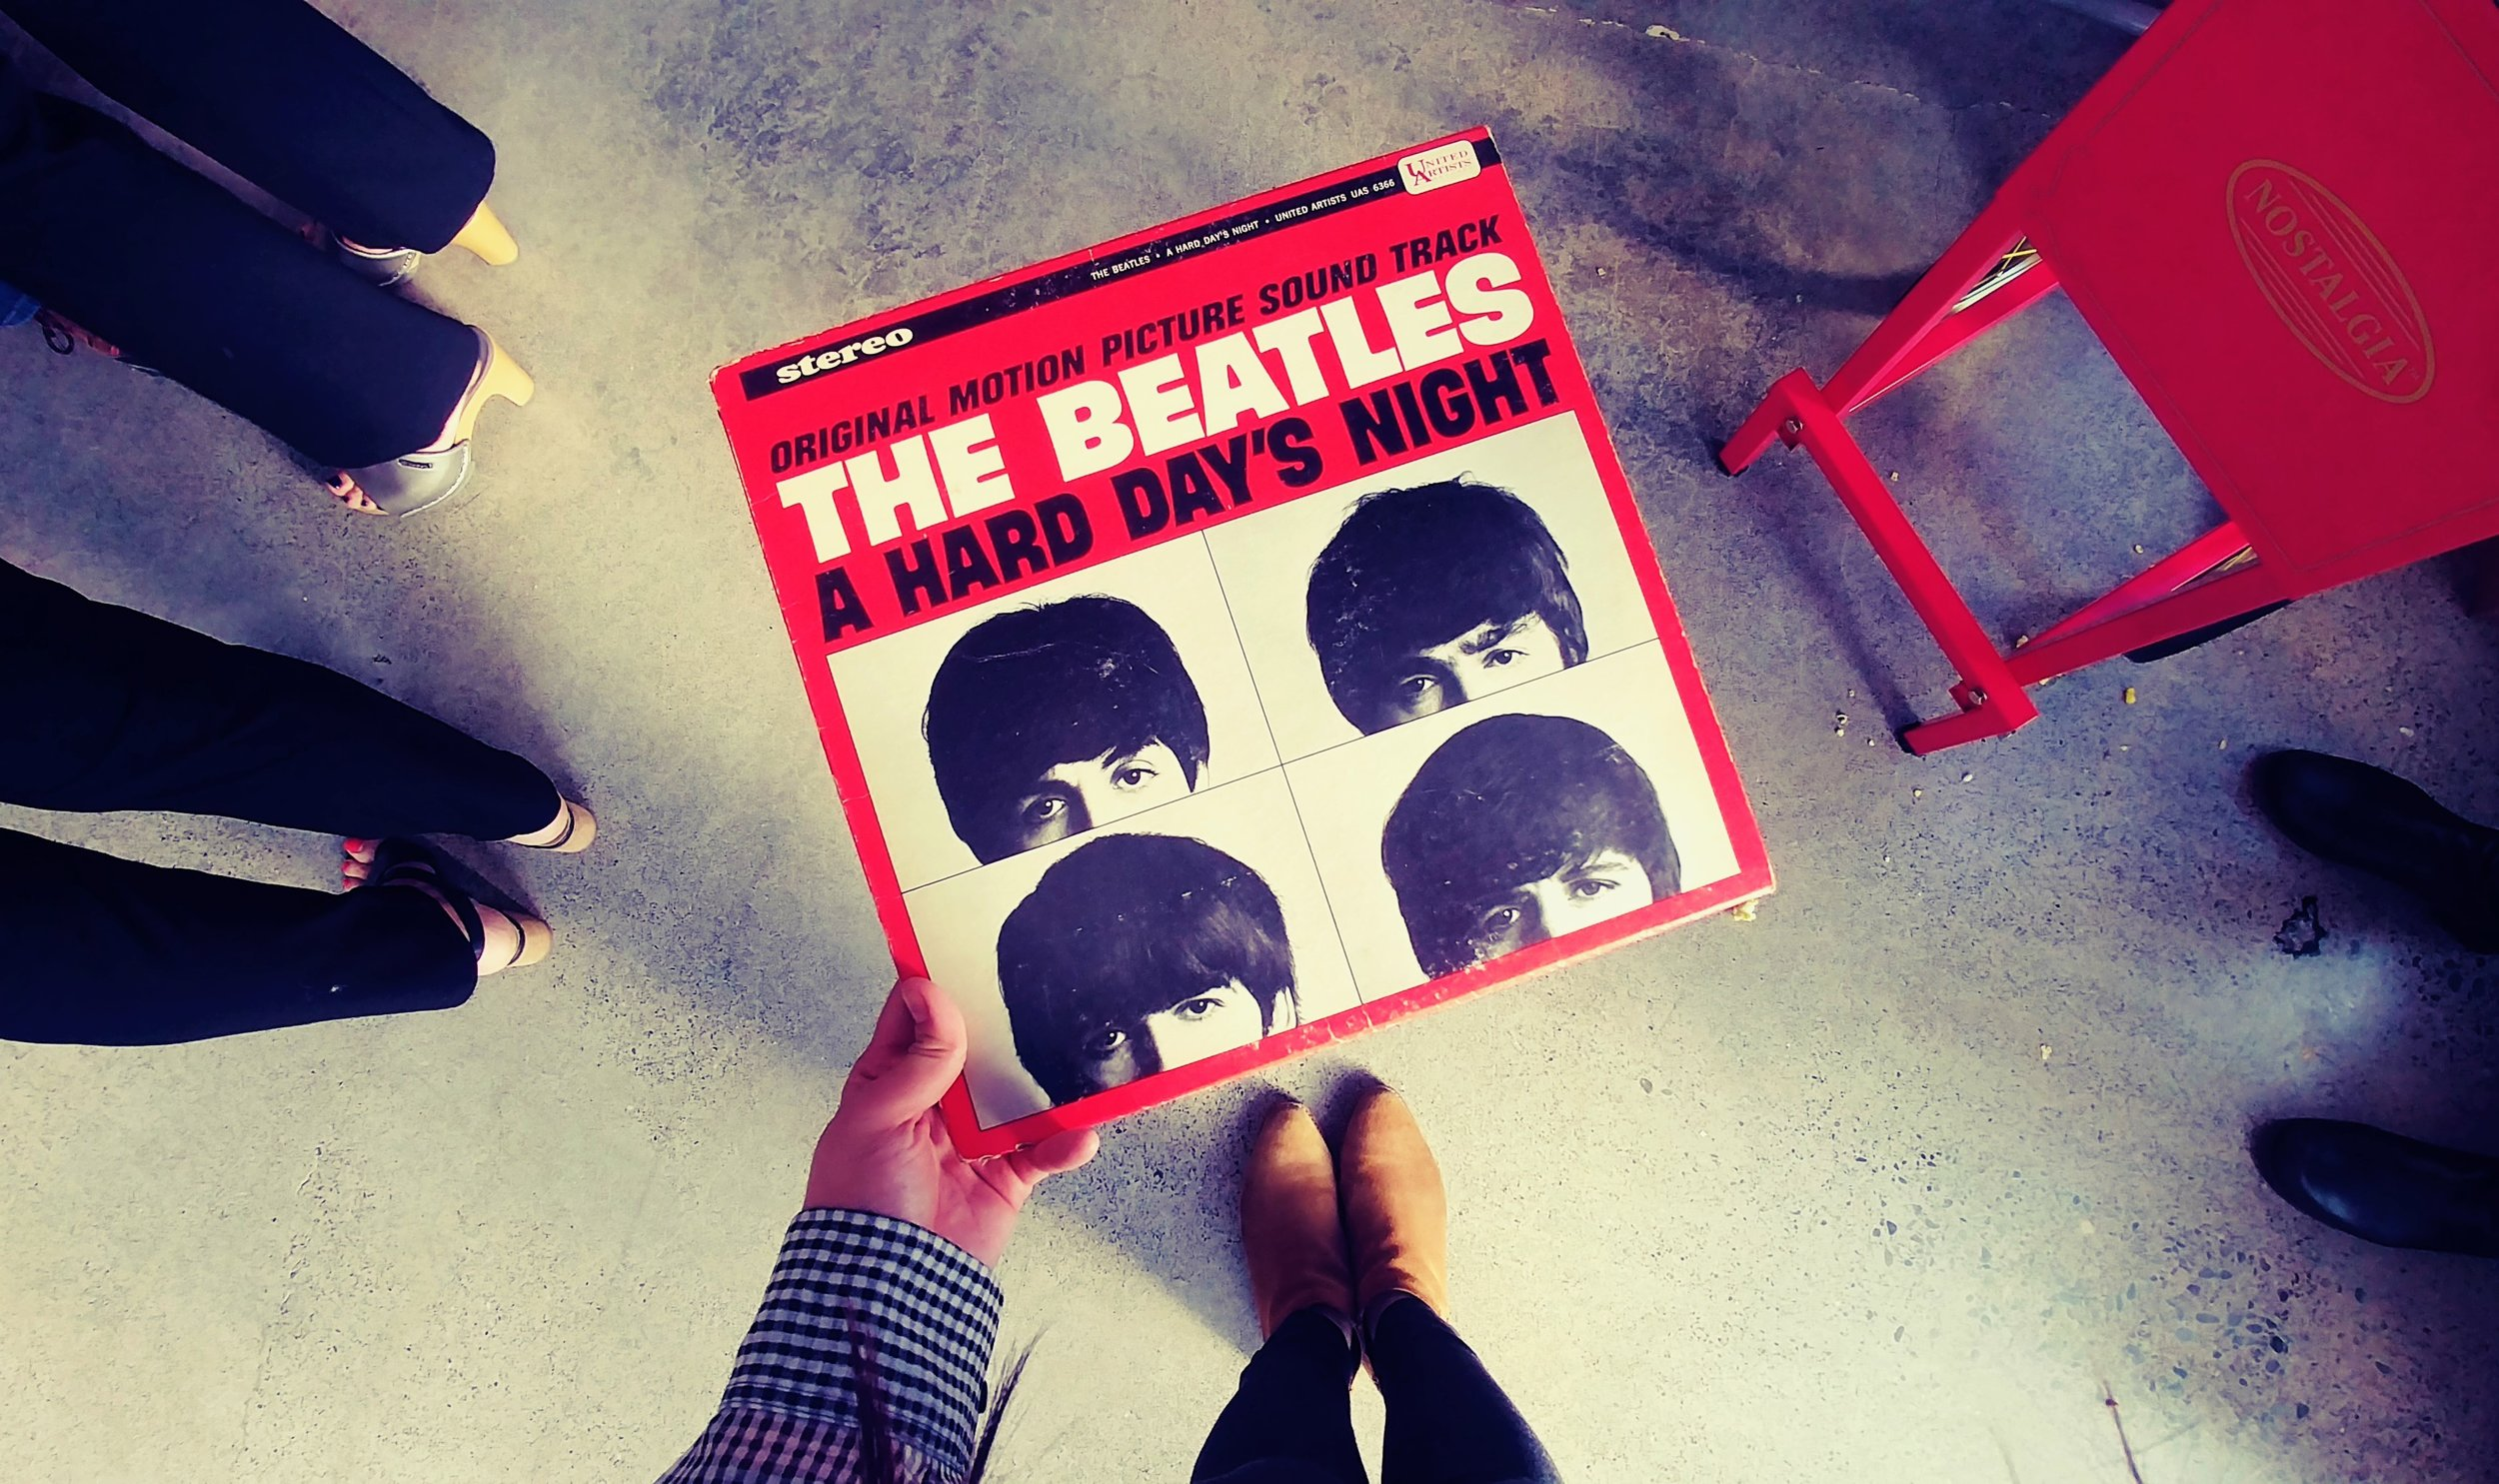 Beatles Album Find at Goodwill San Rafael